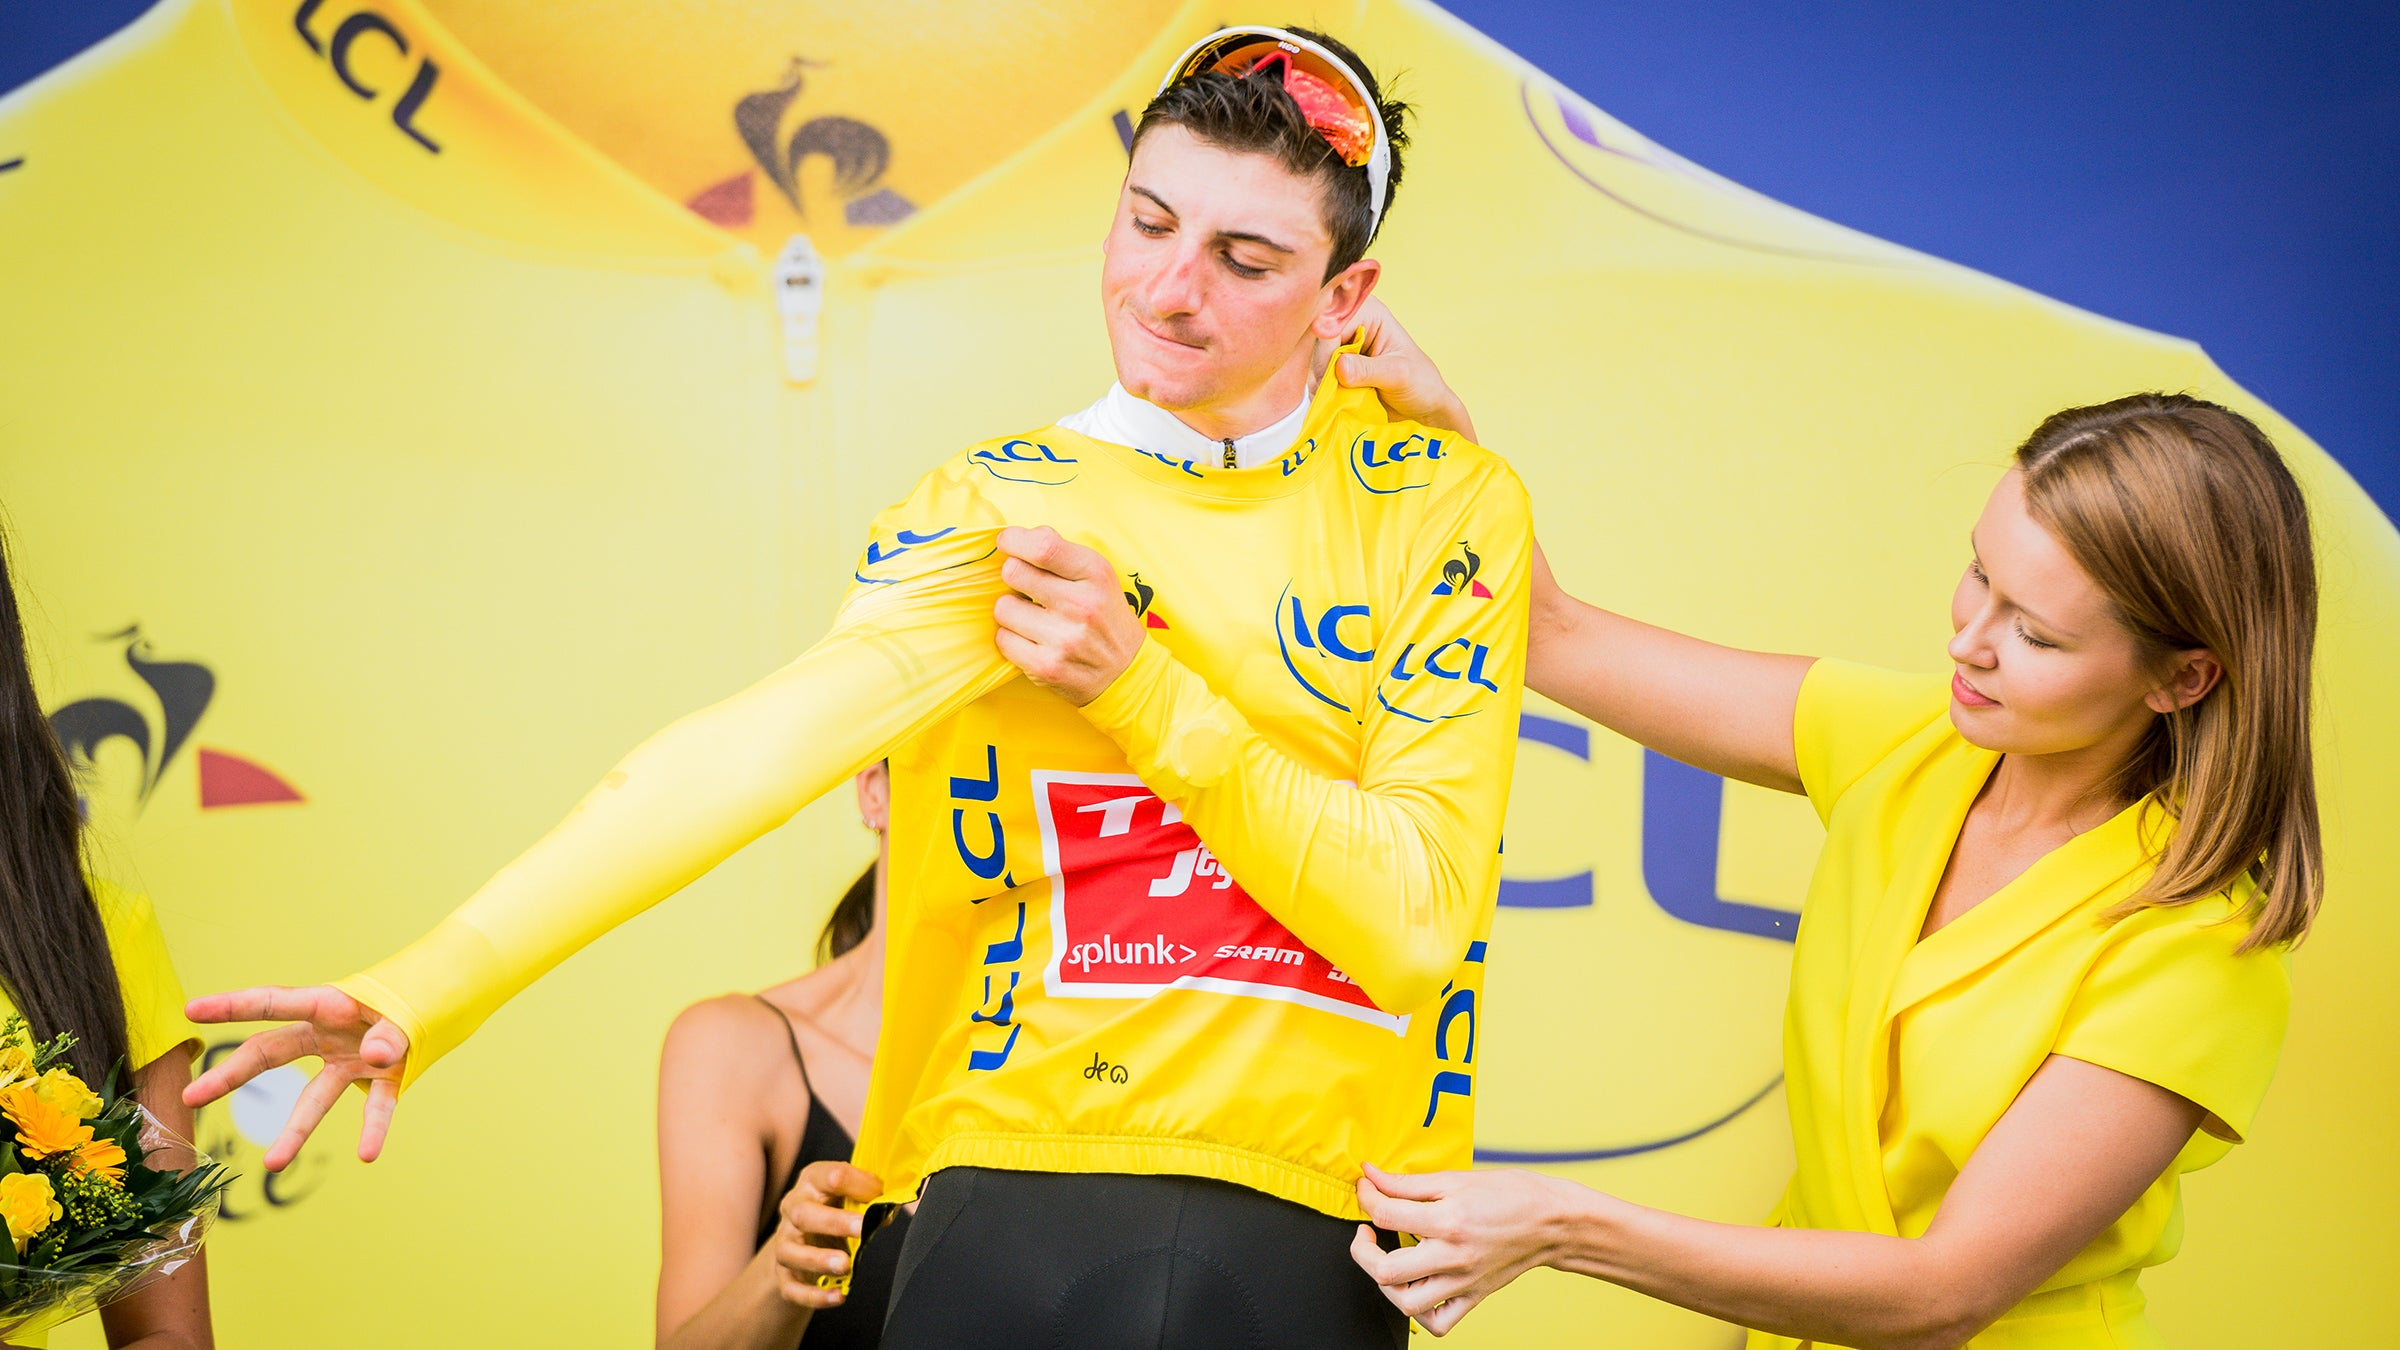 Giulio Ciccone donning the yellow jersey